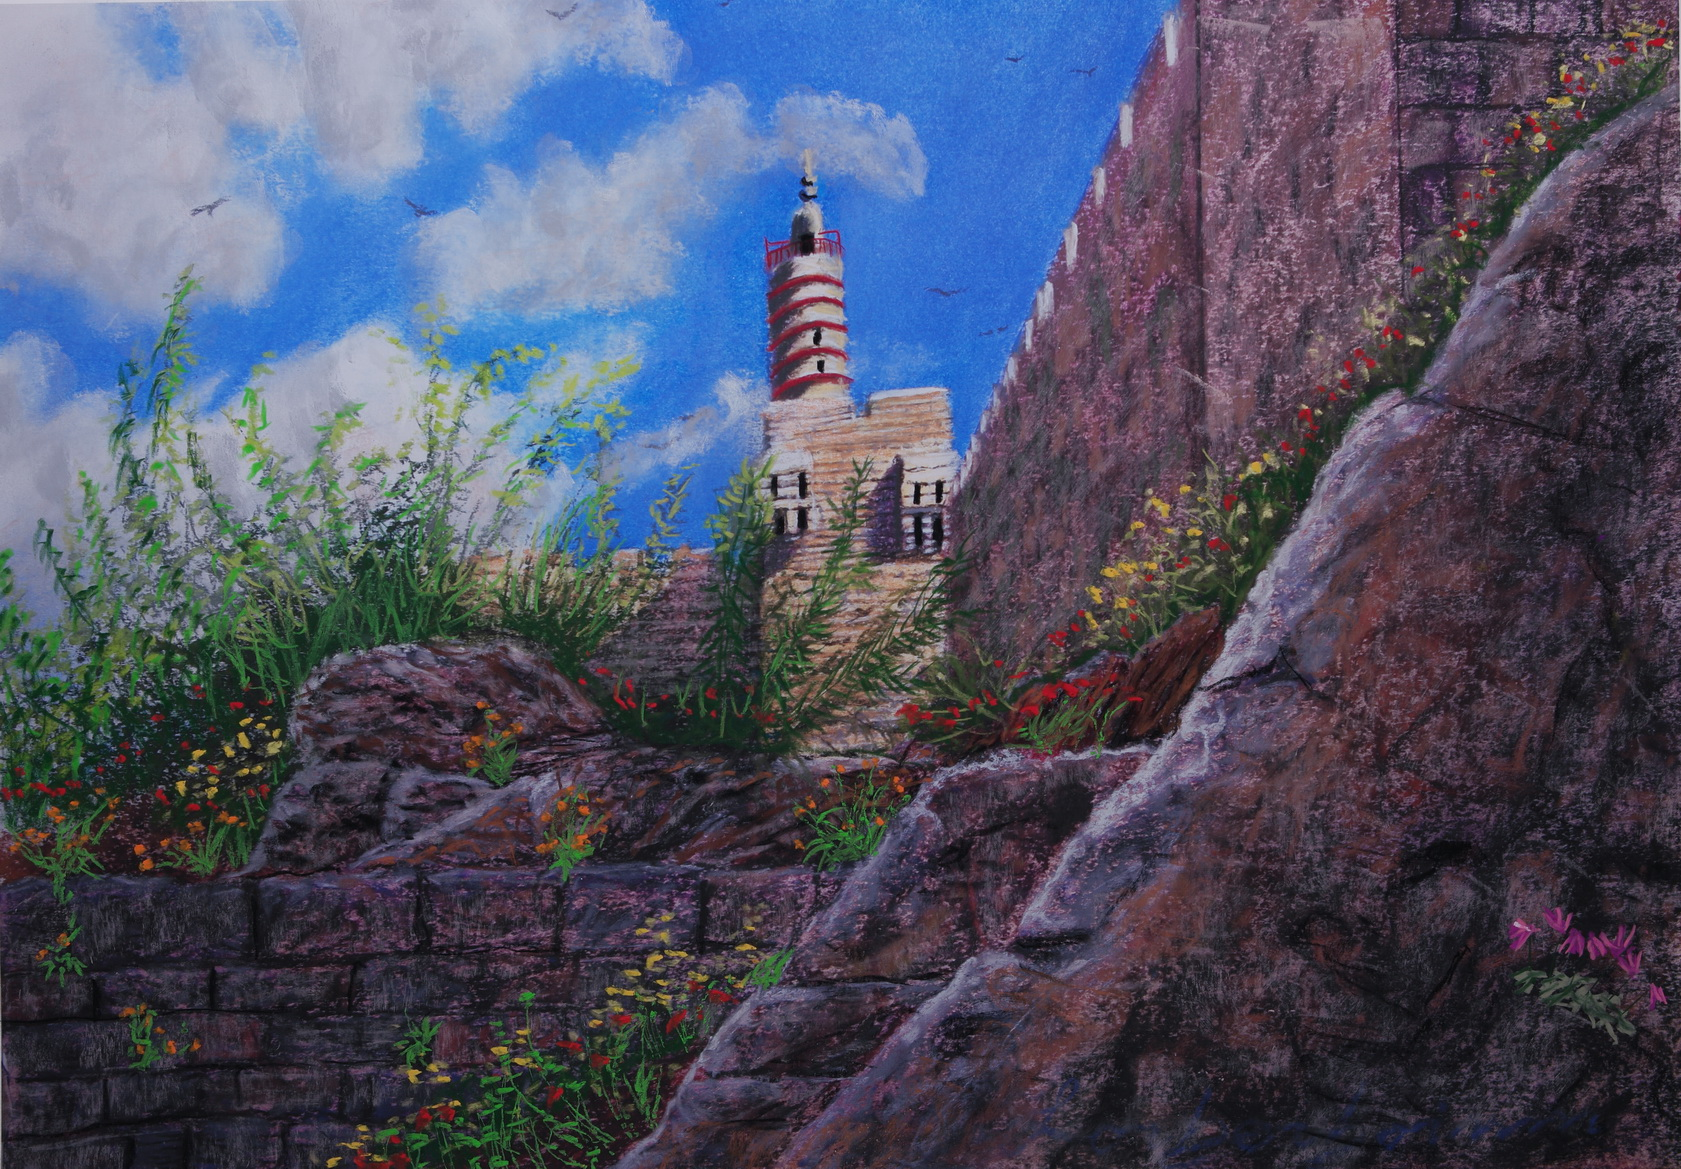 Tower of David, Jerusalem. Lorberboim Soft Pastels Painting. New View Exhibitiom. Tlmuseum.com.